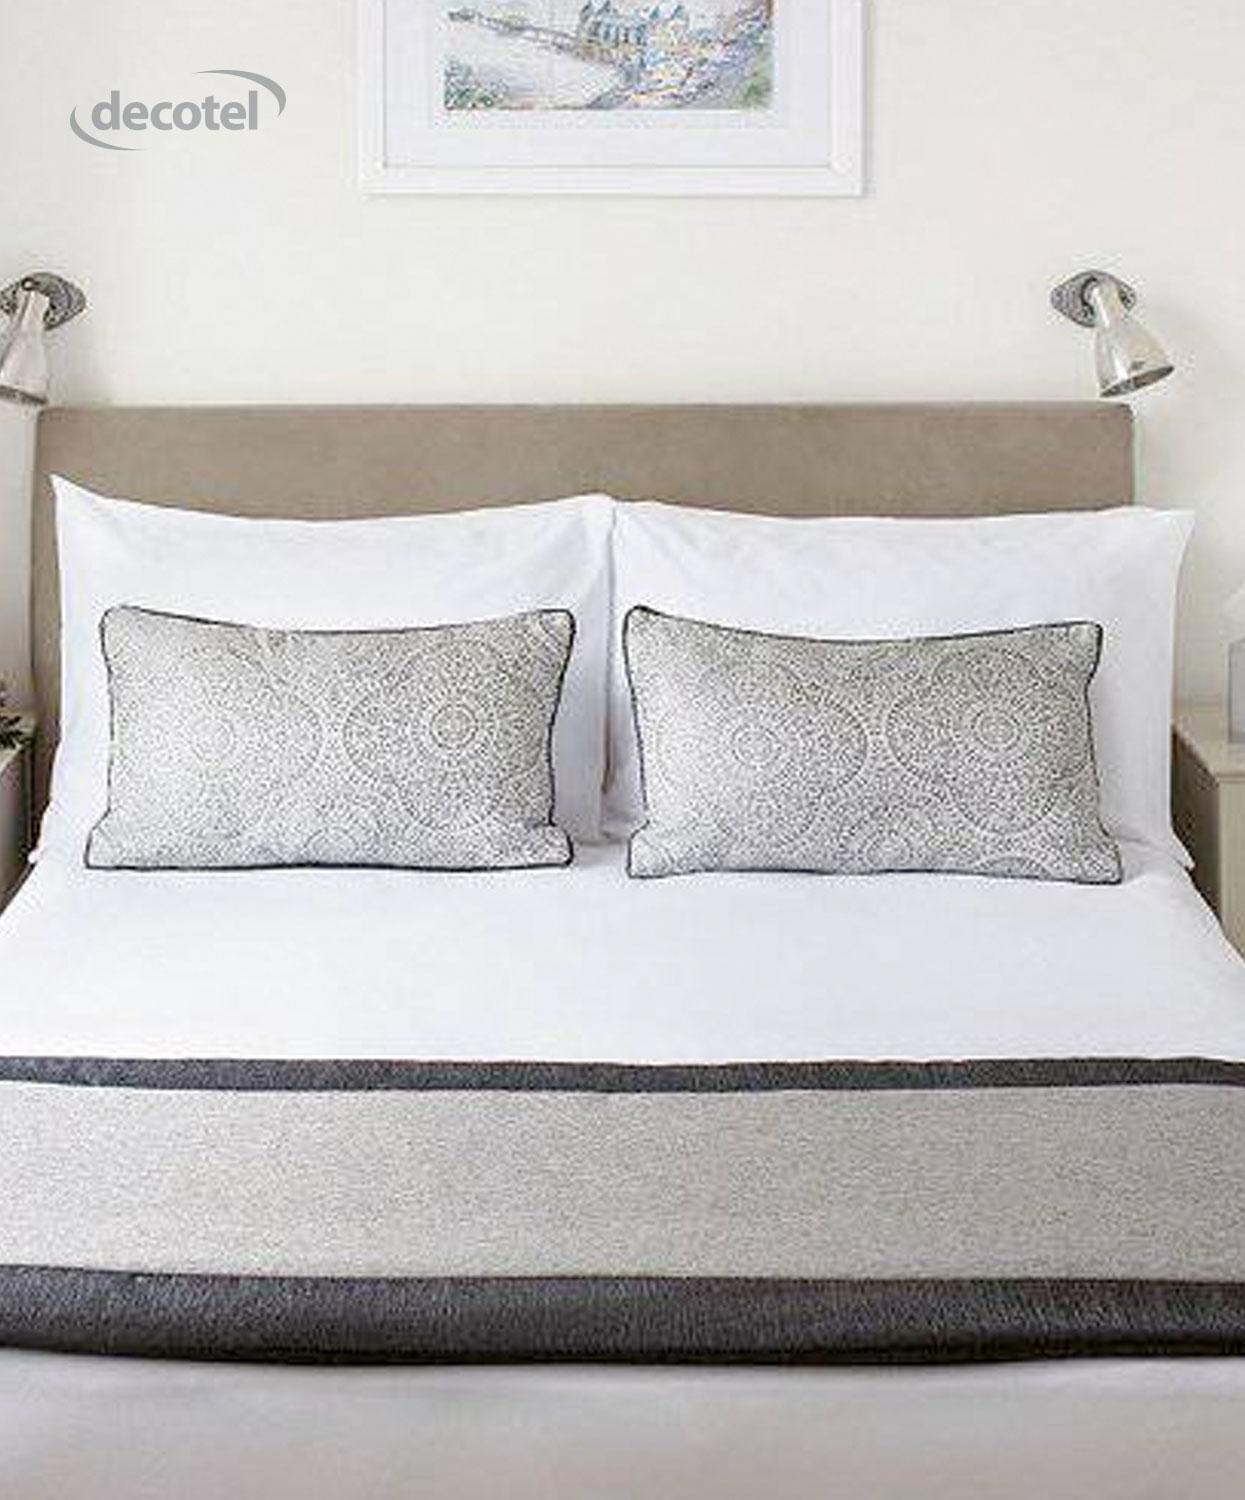 Kensington pillow cases